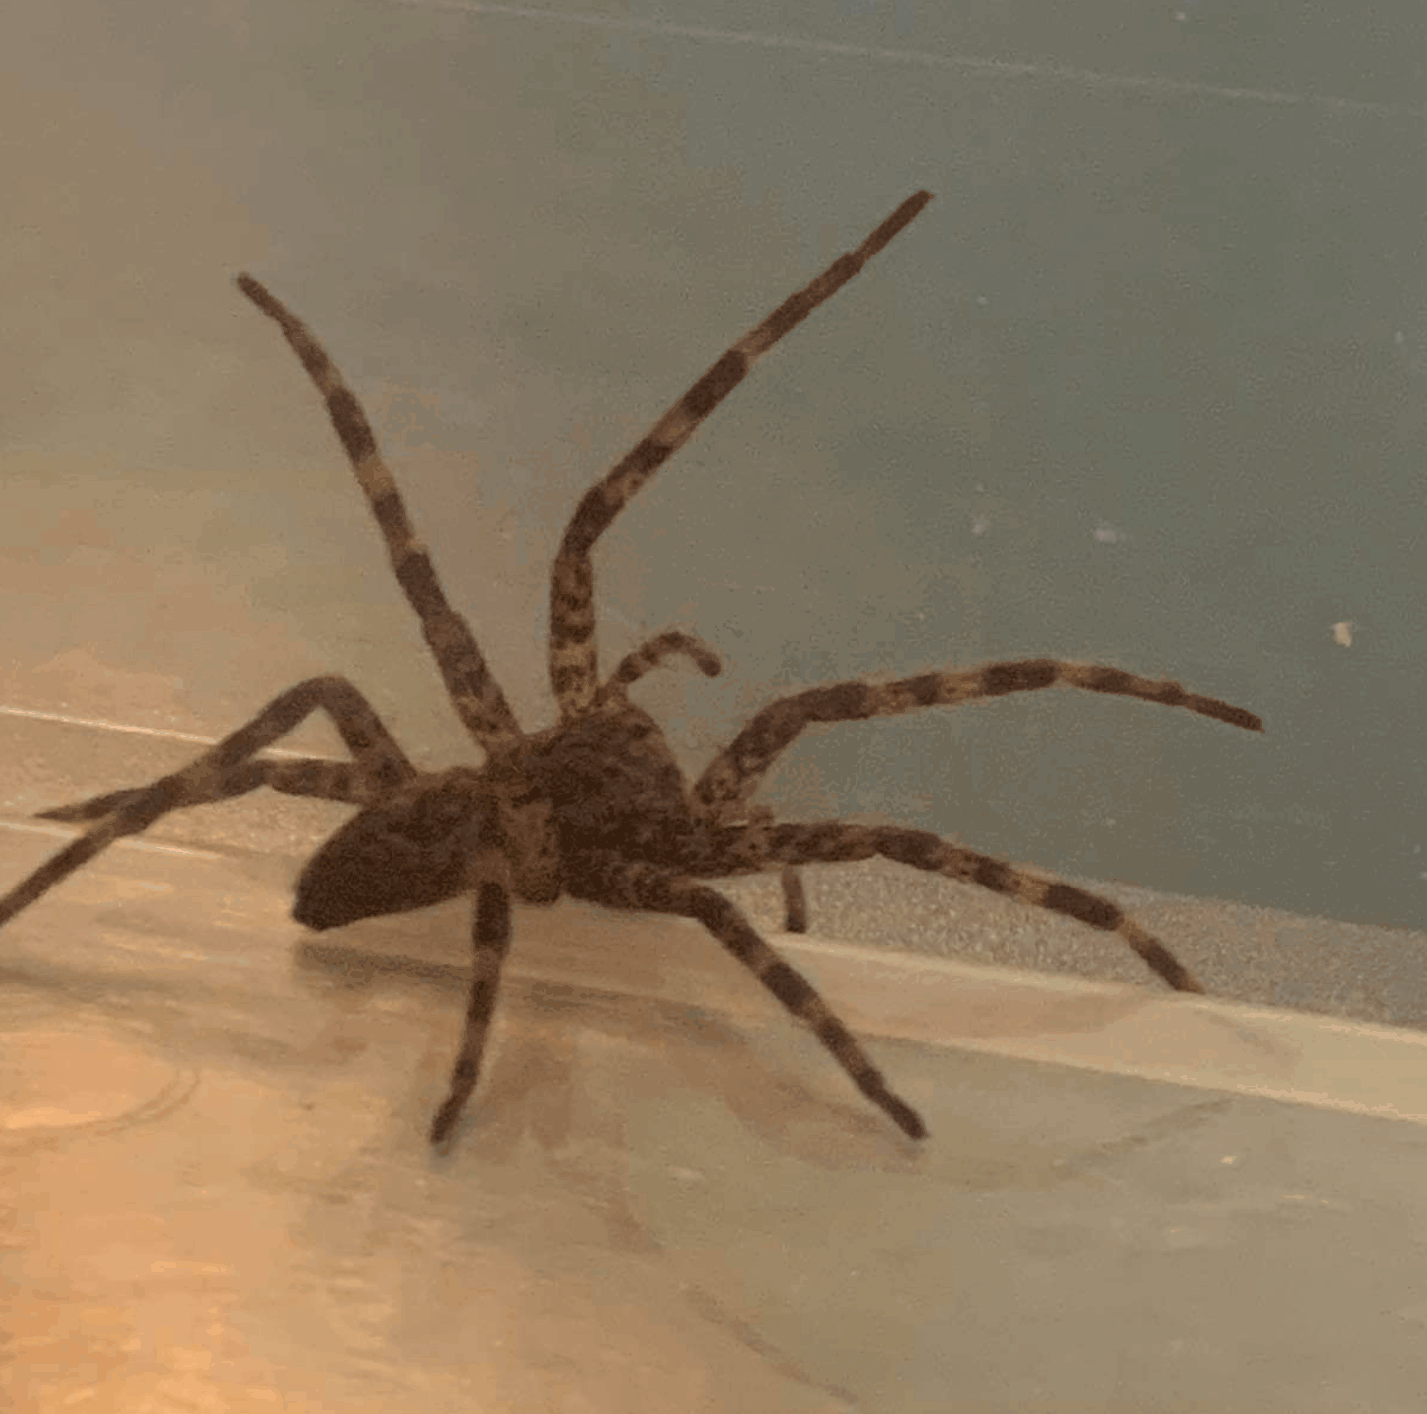 Picture of Dolomedes tenebrosus (Dark Fishing Spider) - Lateral